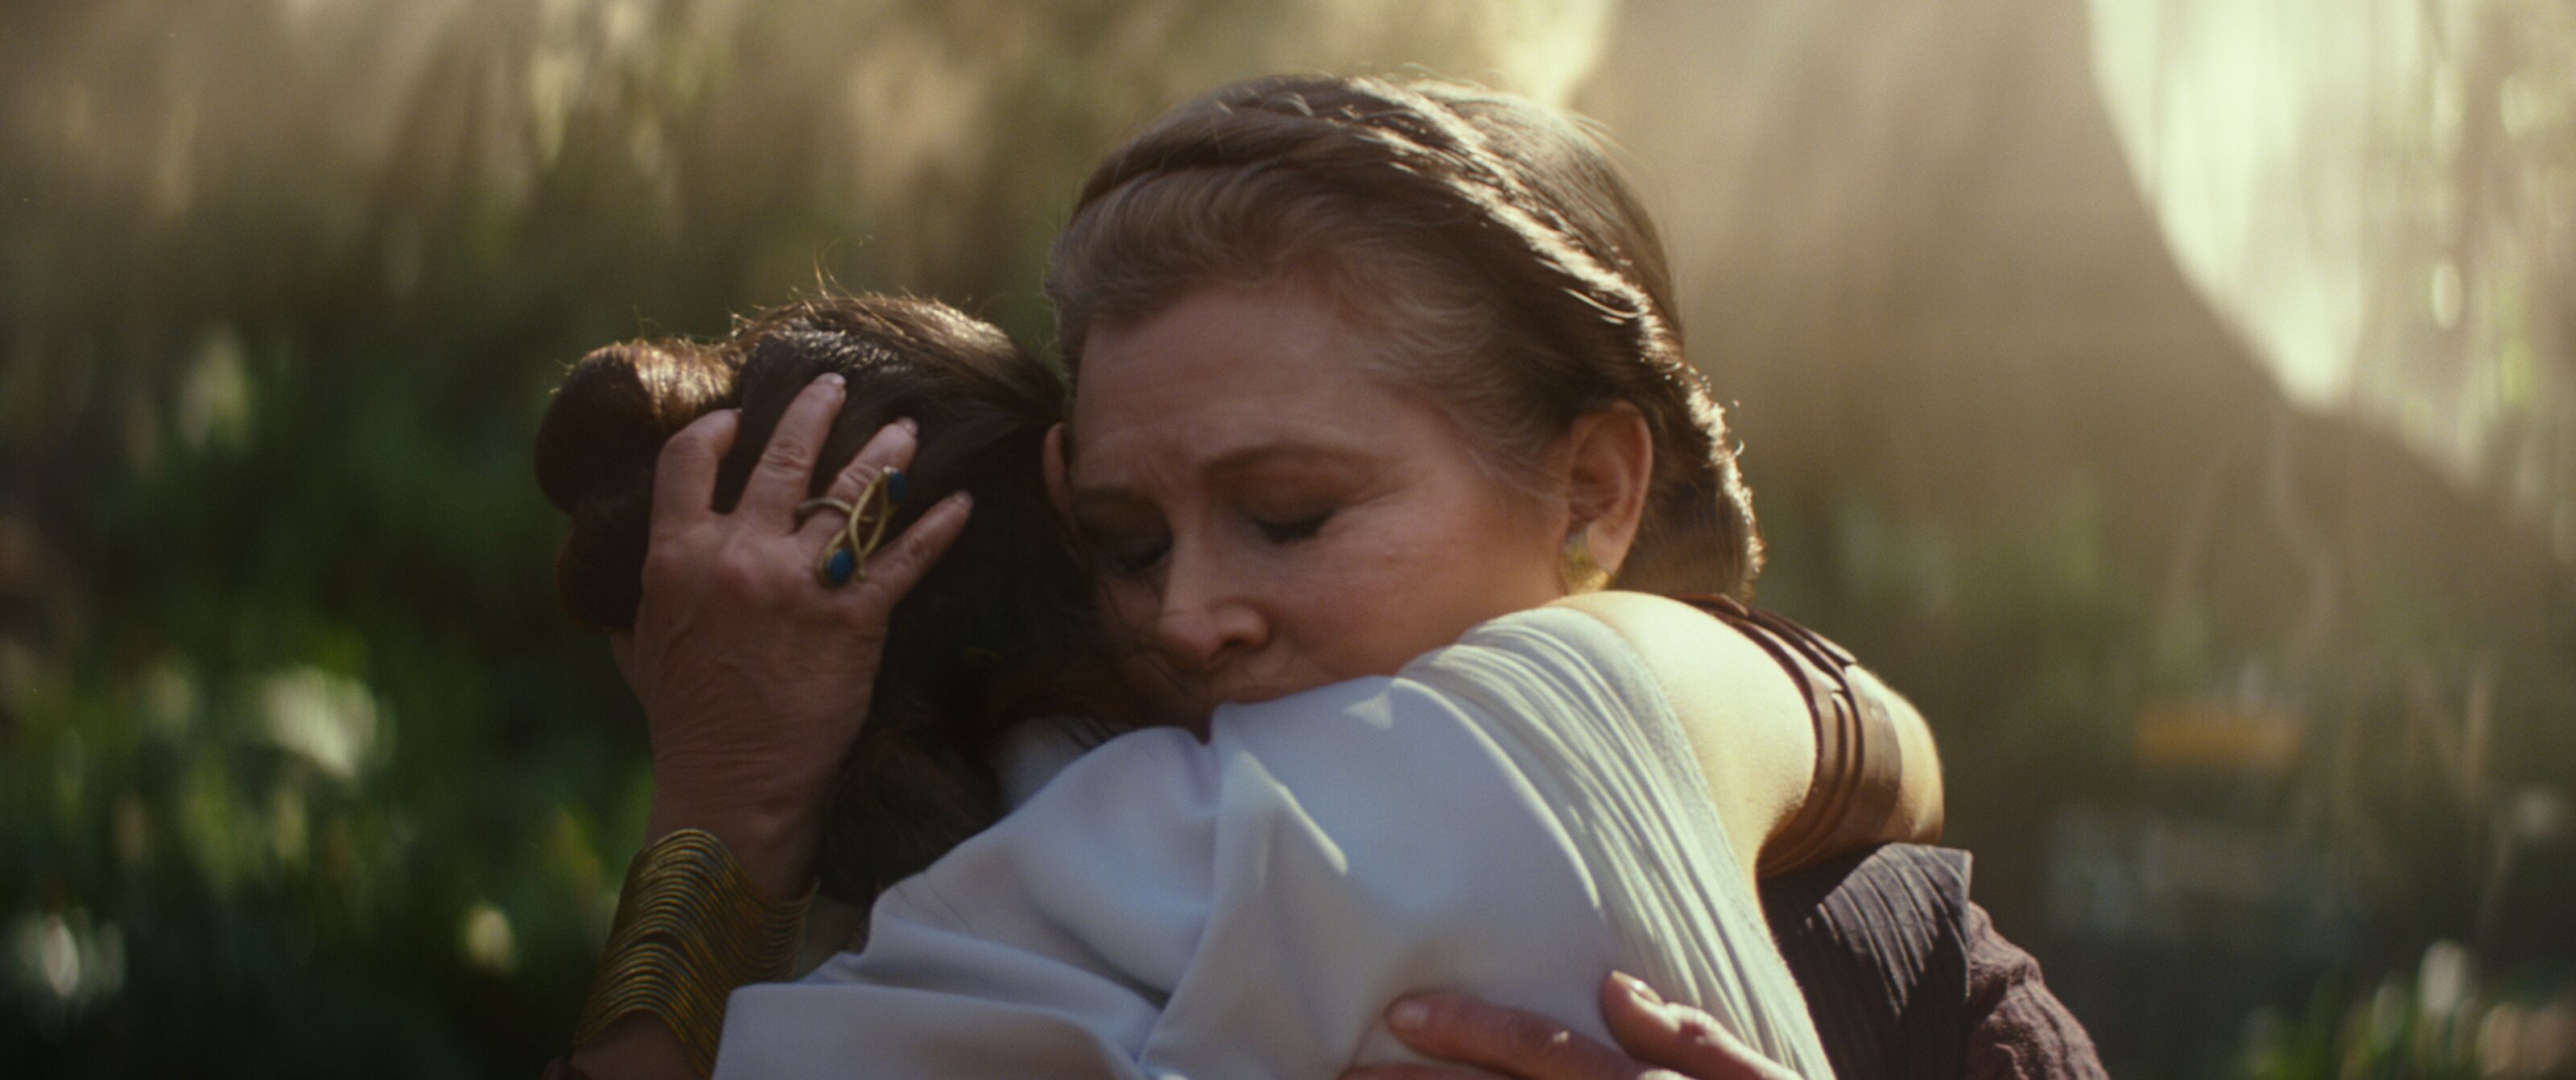 Star Wars: What did Carrie Fisher say to Daisy Ridley during their hug?